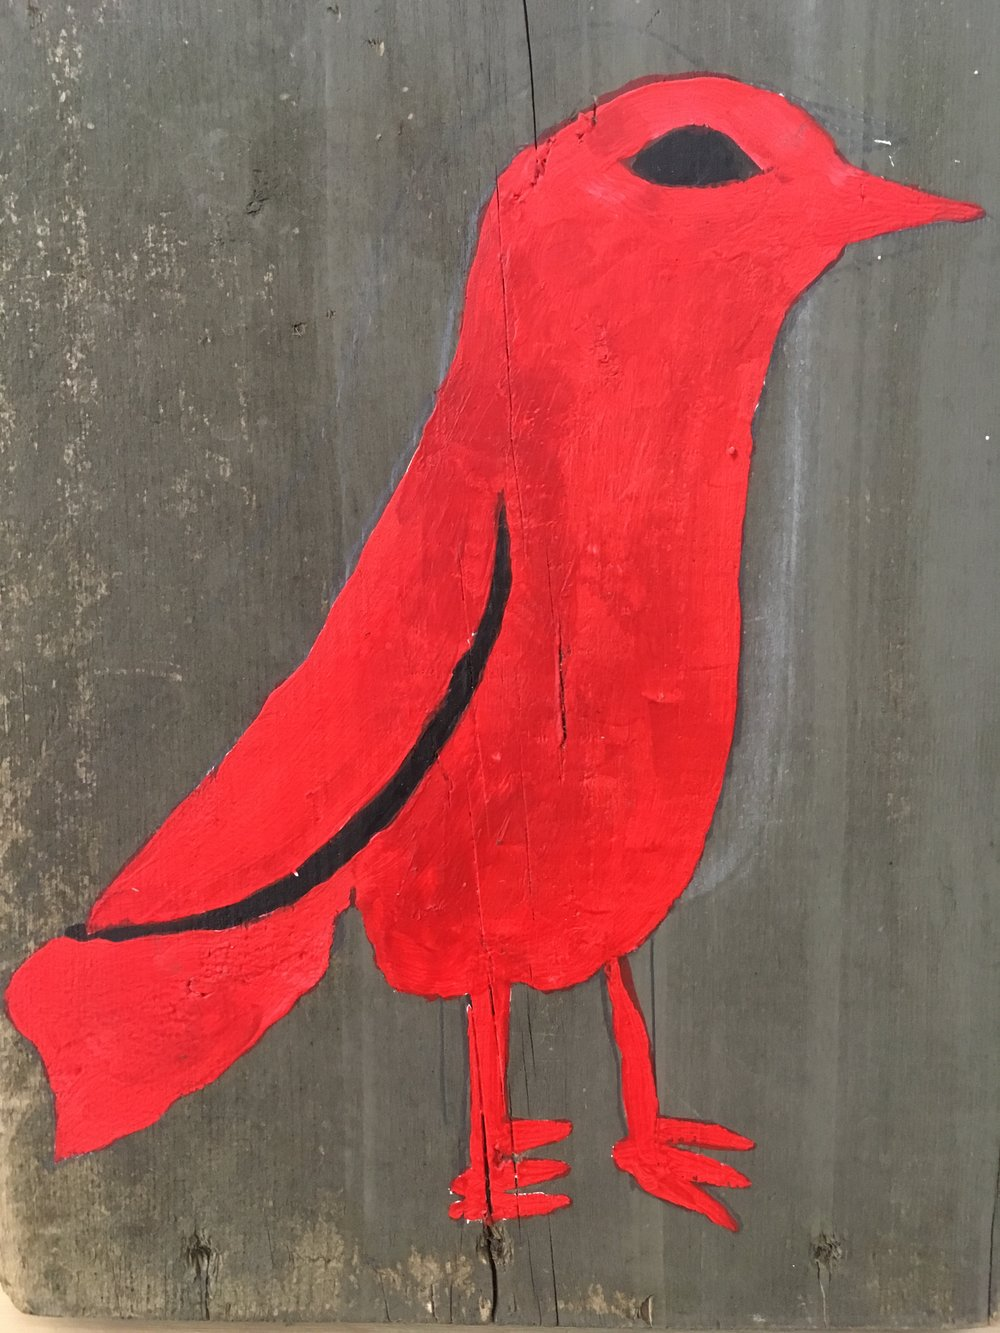 Romas Astrauskas, Red Bird, 2017, acrylic on wood, 12 X 9 inches